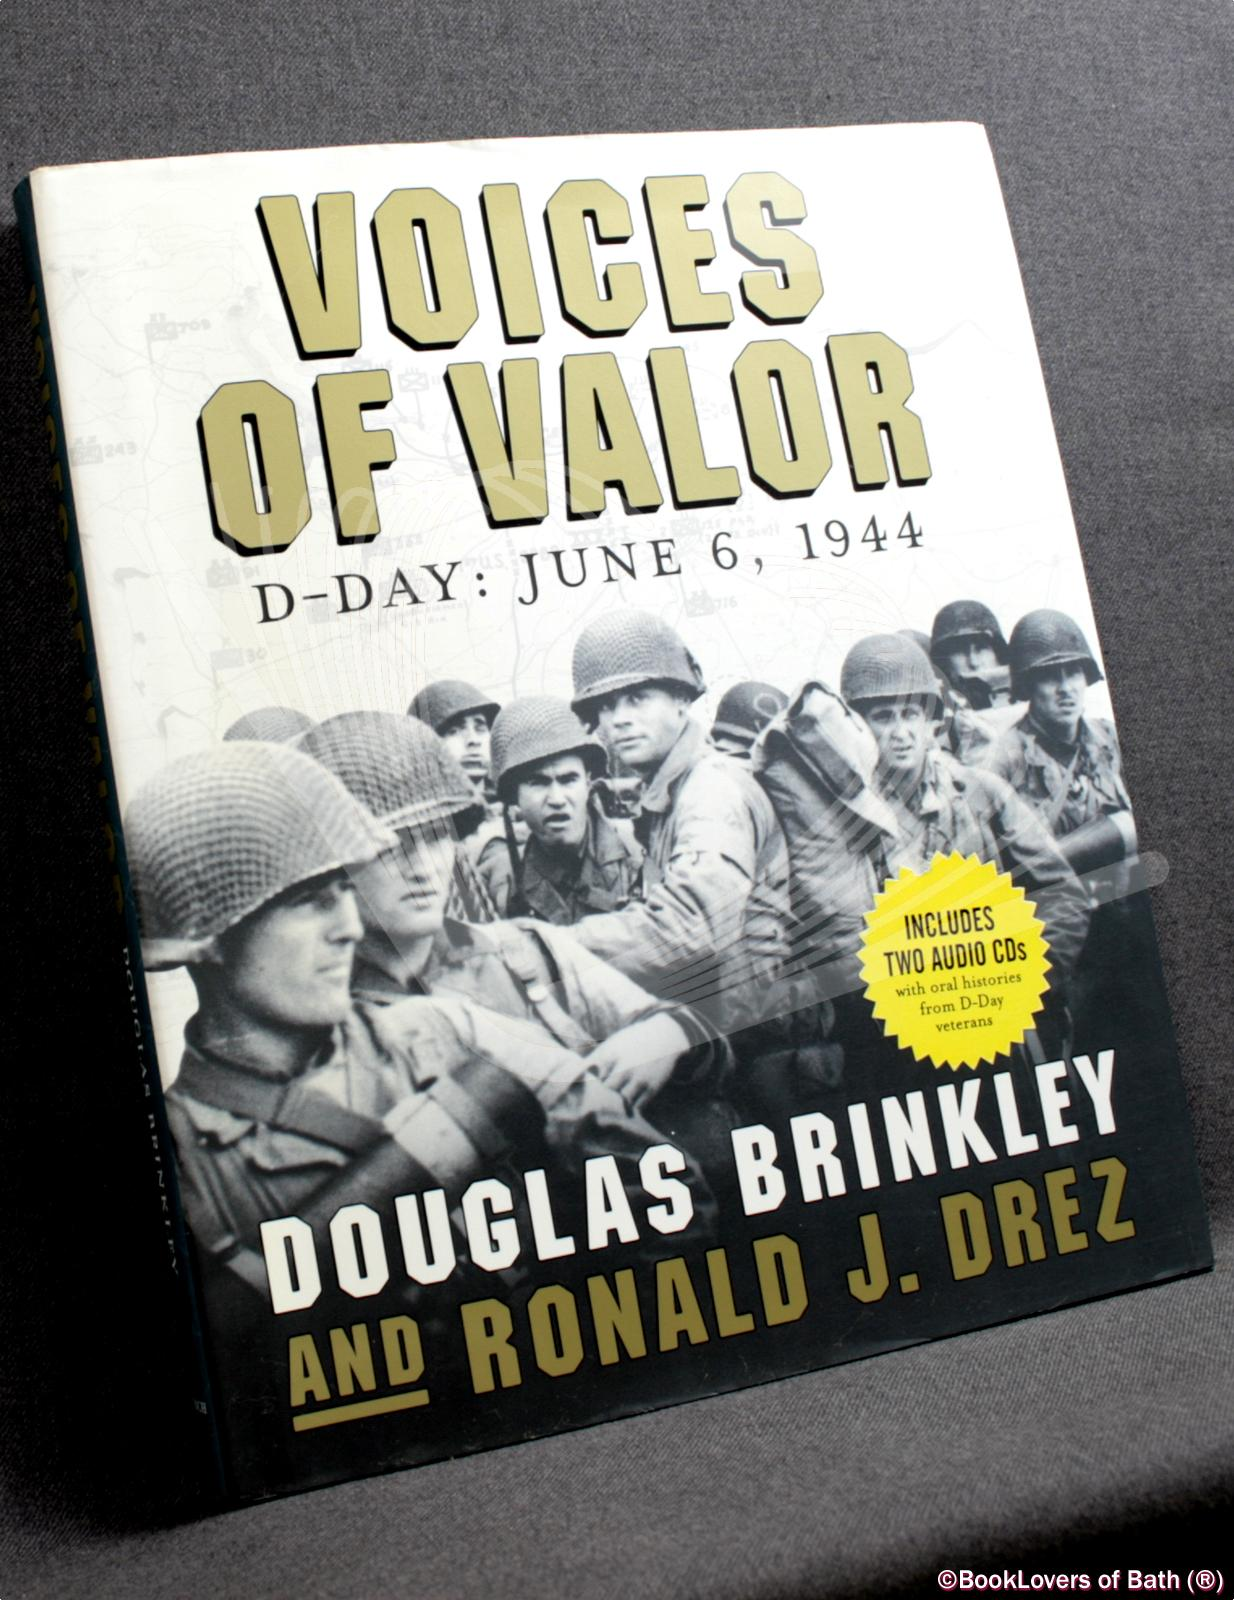 Voices of Valor: D-Day - June 6, 1944 - Douglas Brinkley & Ronald J. Drez